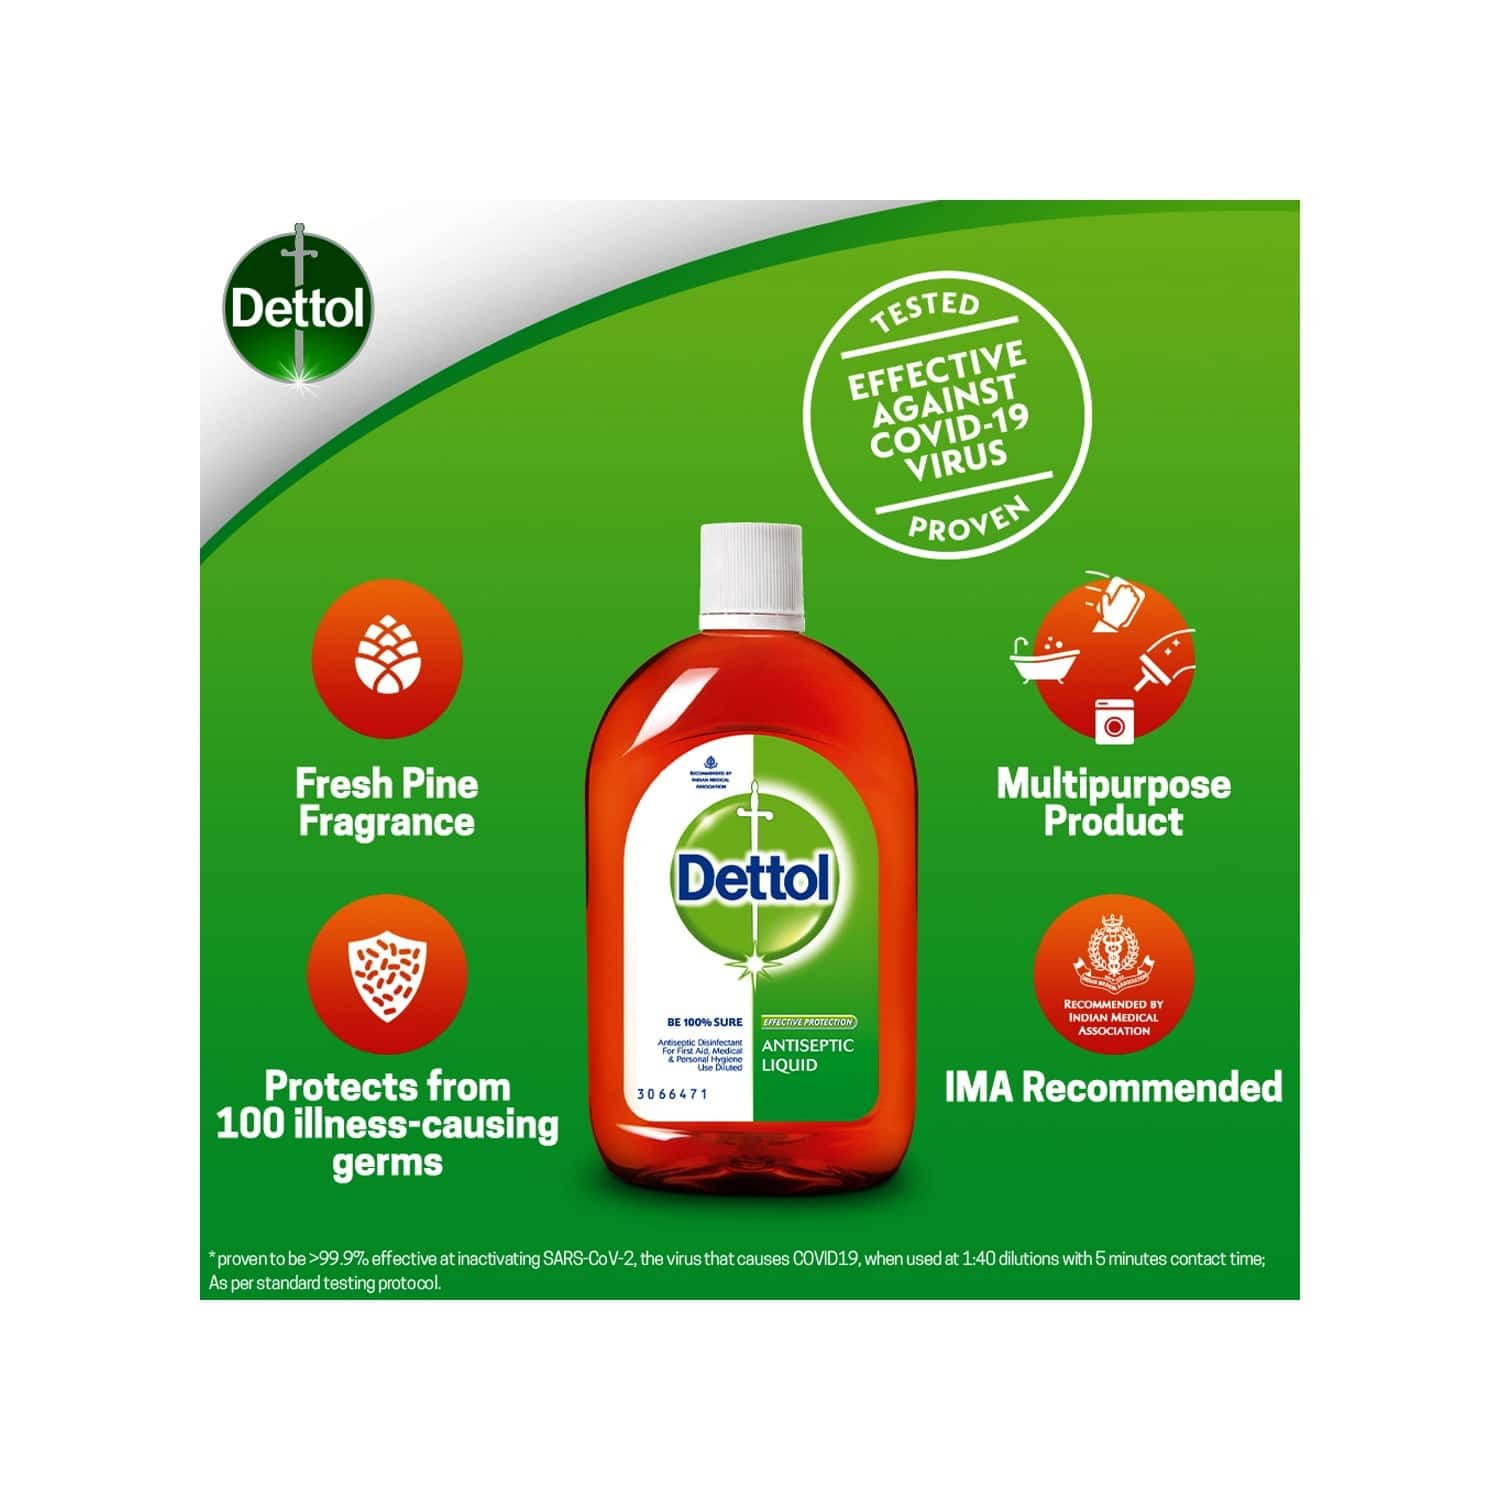 Dettol Antiseptic Disinfectant Liquid For First Aid, Surface Cleaning And Personal Hygiene - 550 Ml With Dettol Clinical Strength Antiseptic Hand Sanitizer - 500ml